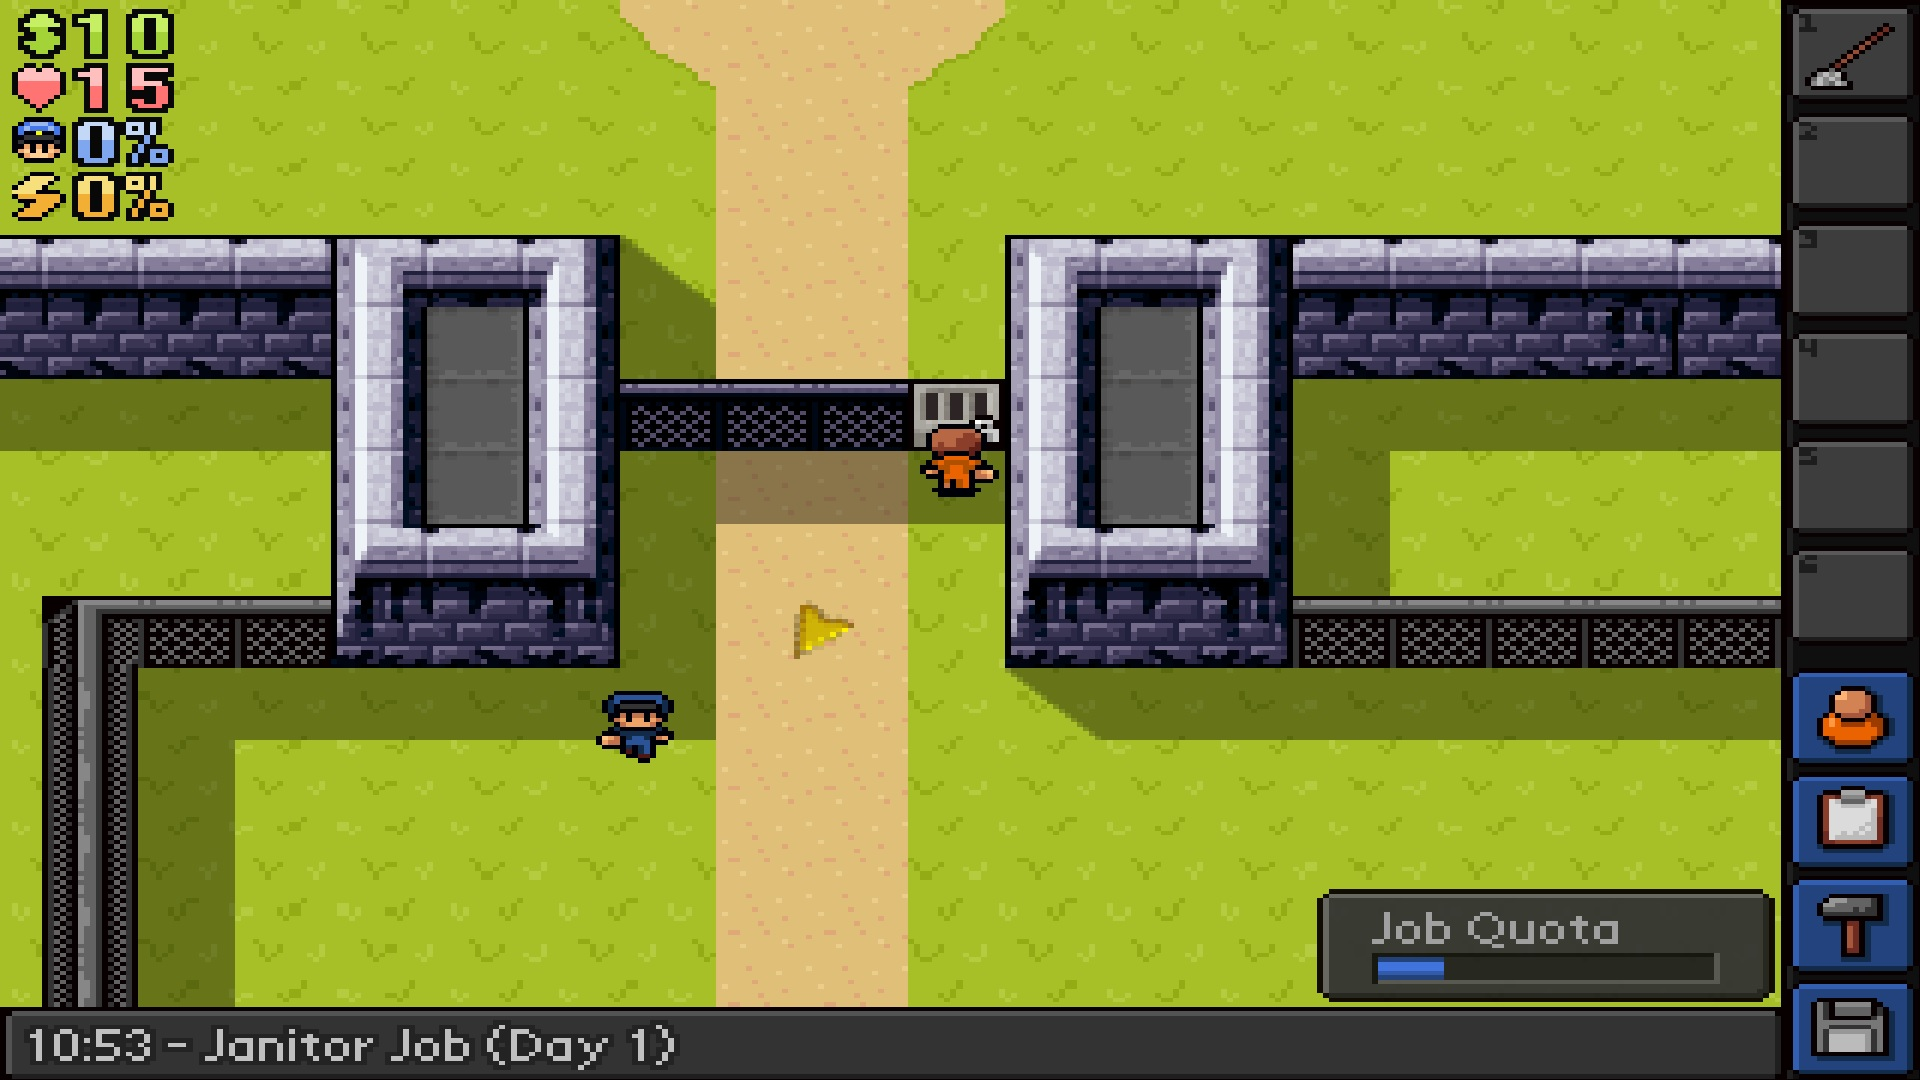 The Escapists - Fhurst Peak Correctional Facility [Online Game Code] by Team17 (Image #10)